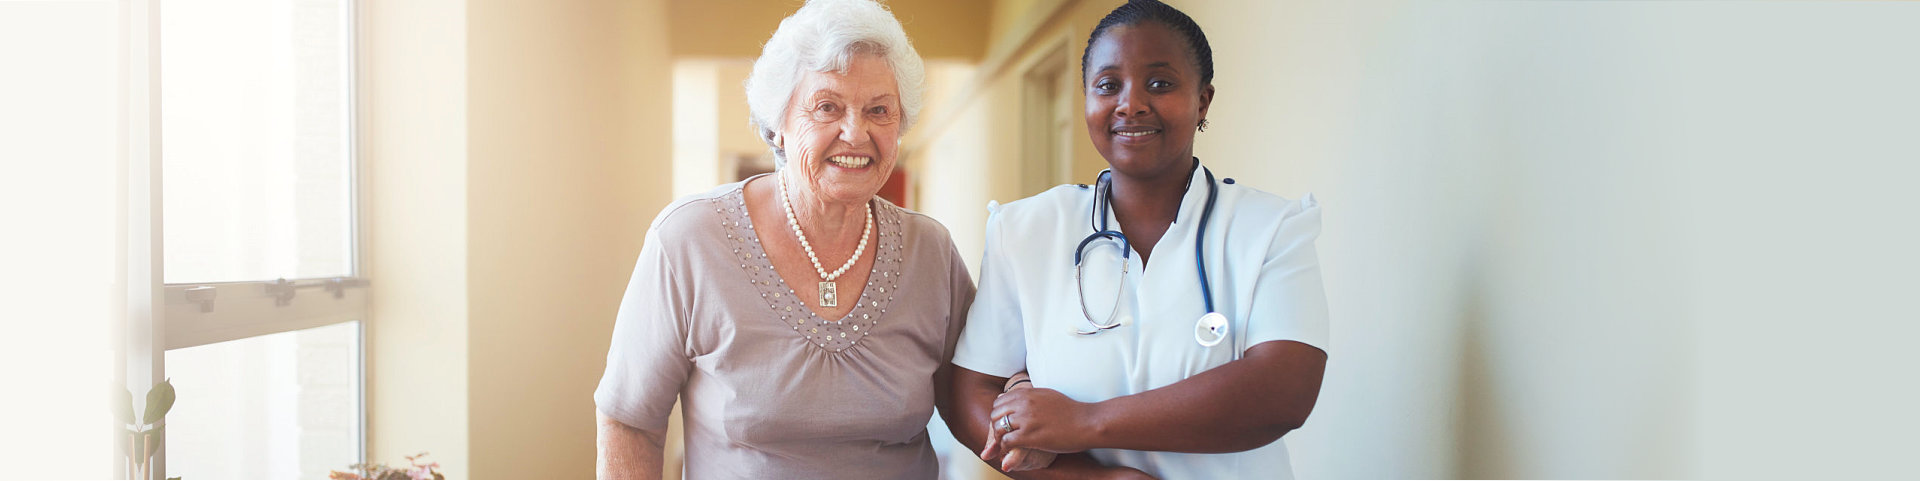 caregiver and patient walking in the hallway